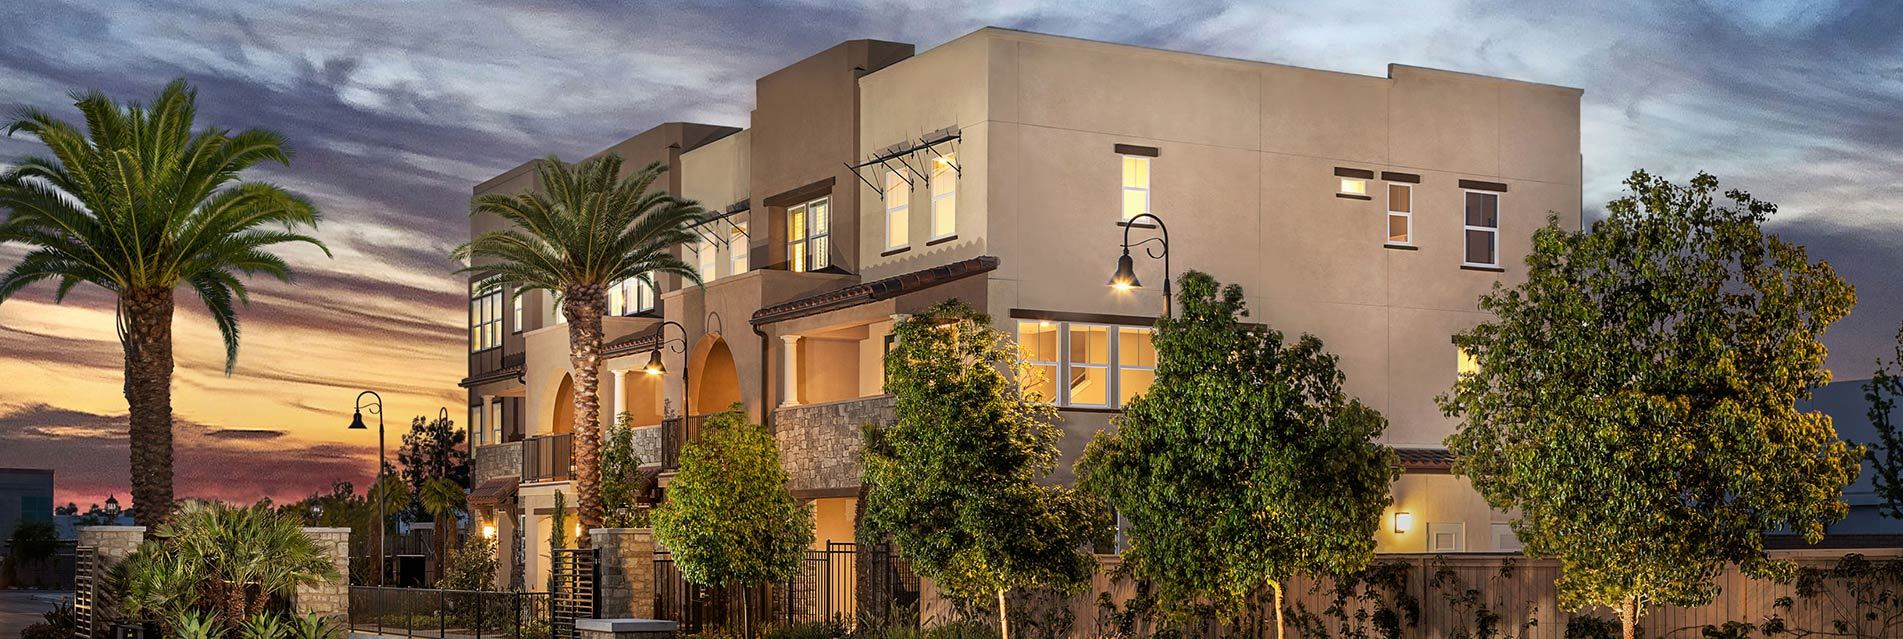 New Homes in Buena Park, CA | 312 Communities | NewHomeSource